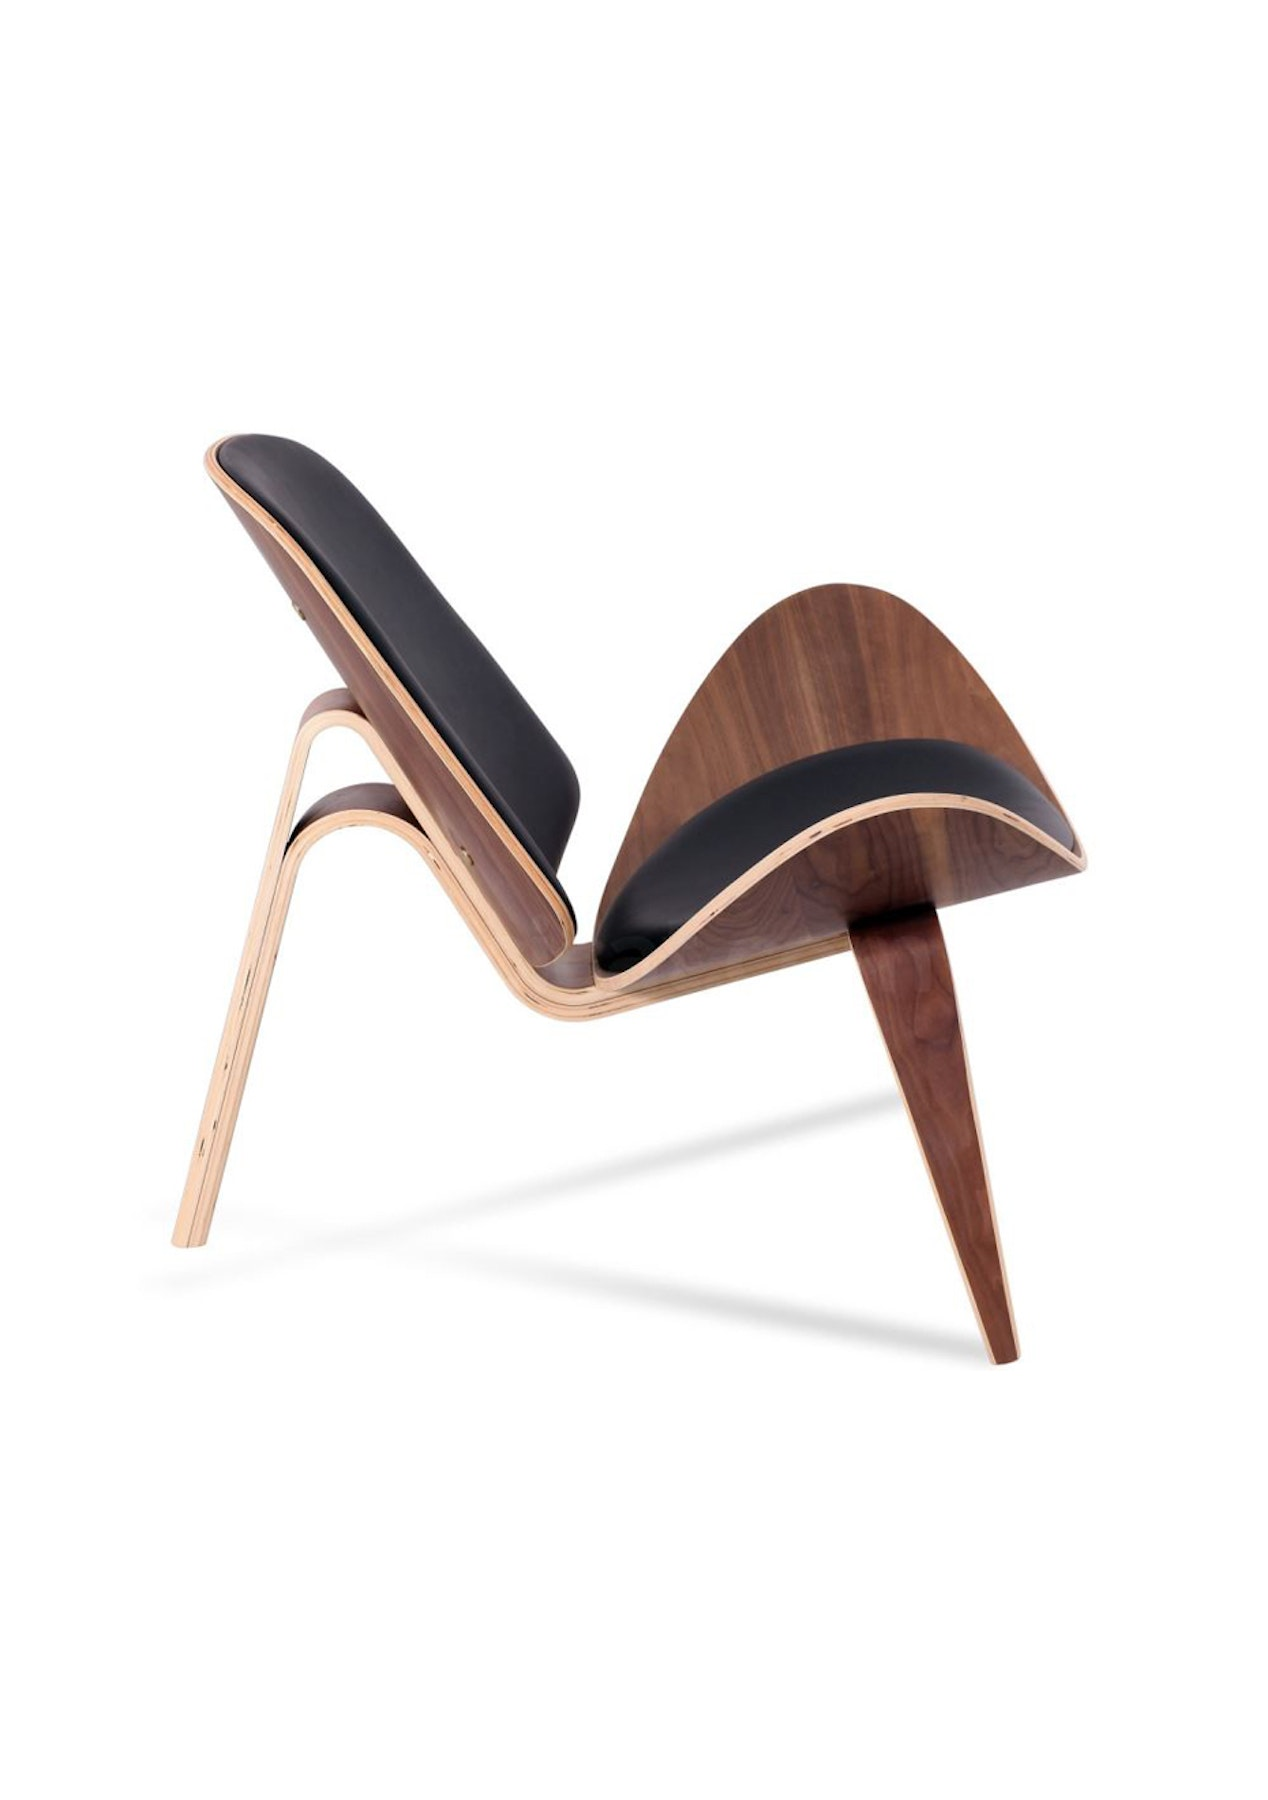 replica designer shell occasional chair scandi style furniture onceit. Black Bedroom Furniture Sets. Home Design Ideas